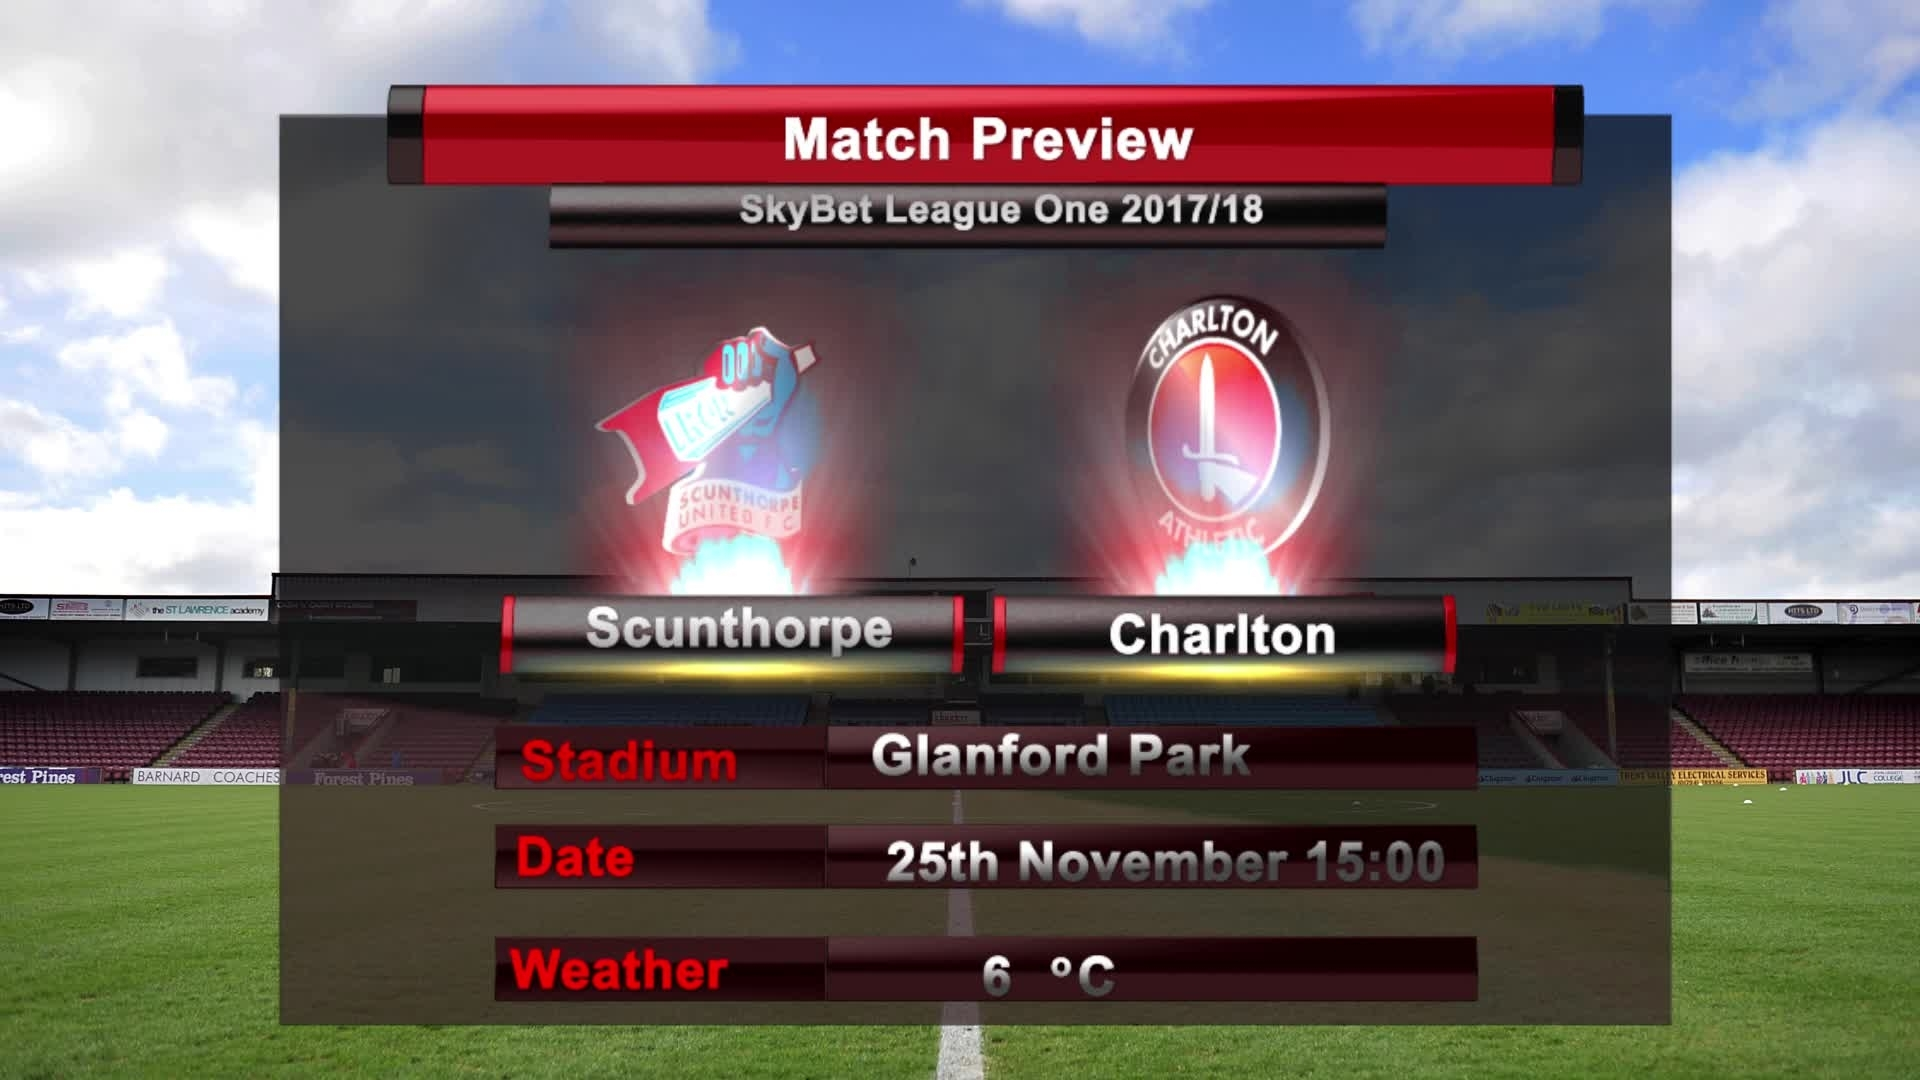 MATCH PREVIEW | Scunthorpe vs Charlton